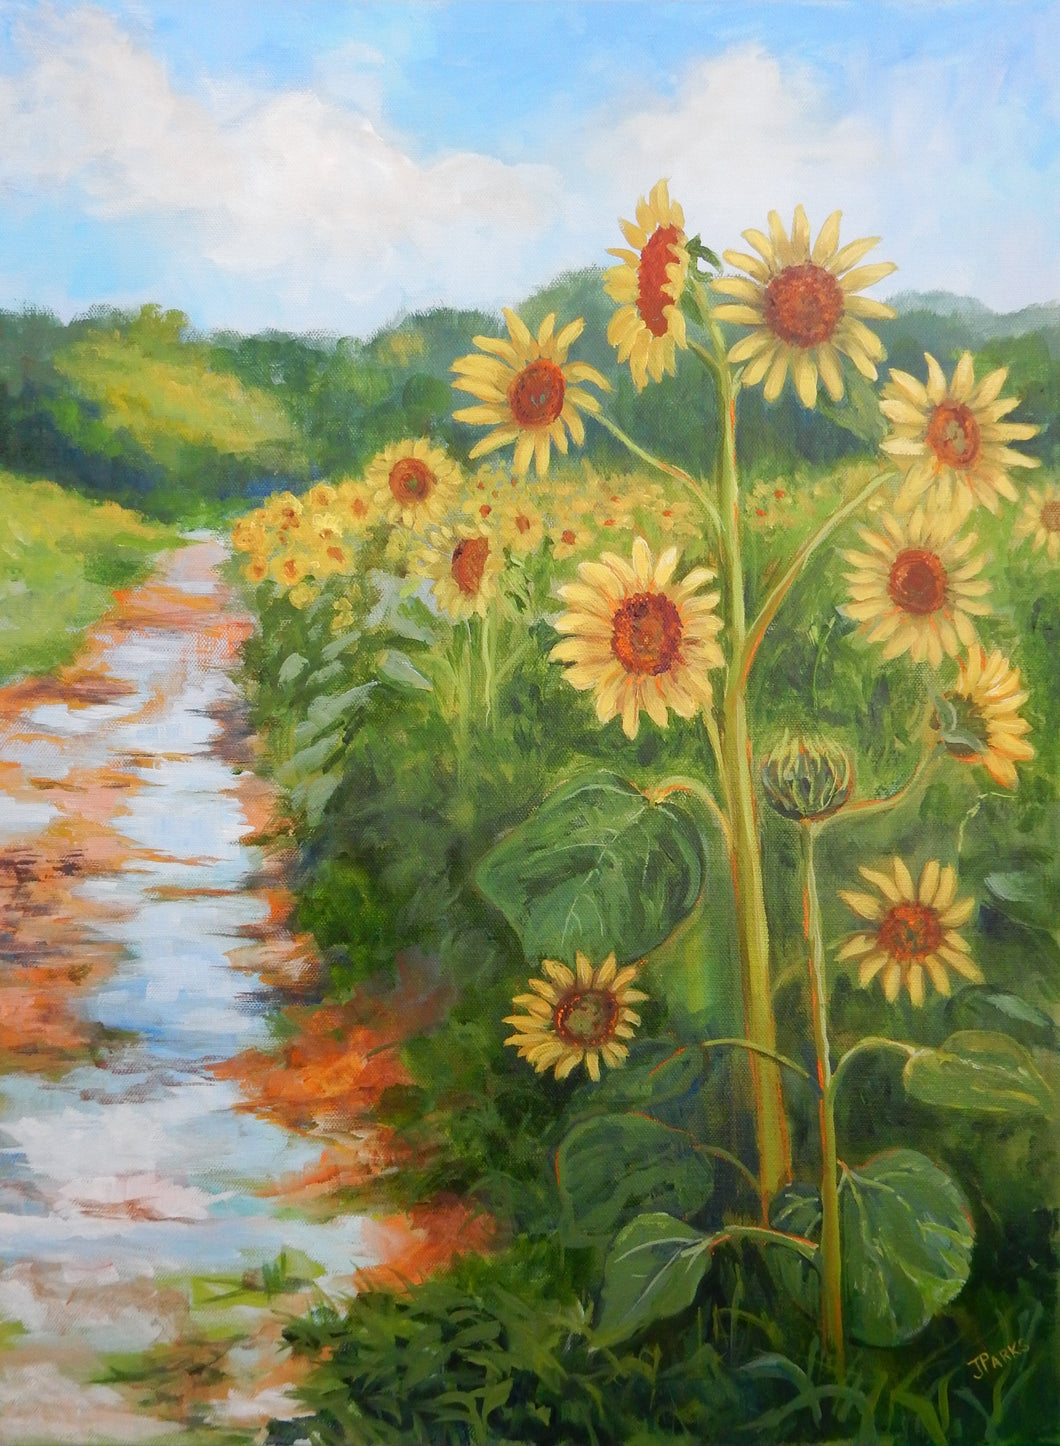 Sunflowers and Puddles, 18 x 24 x .8 (unframed)